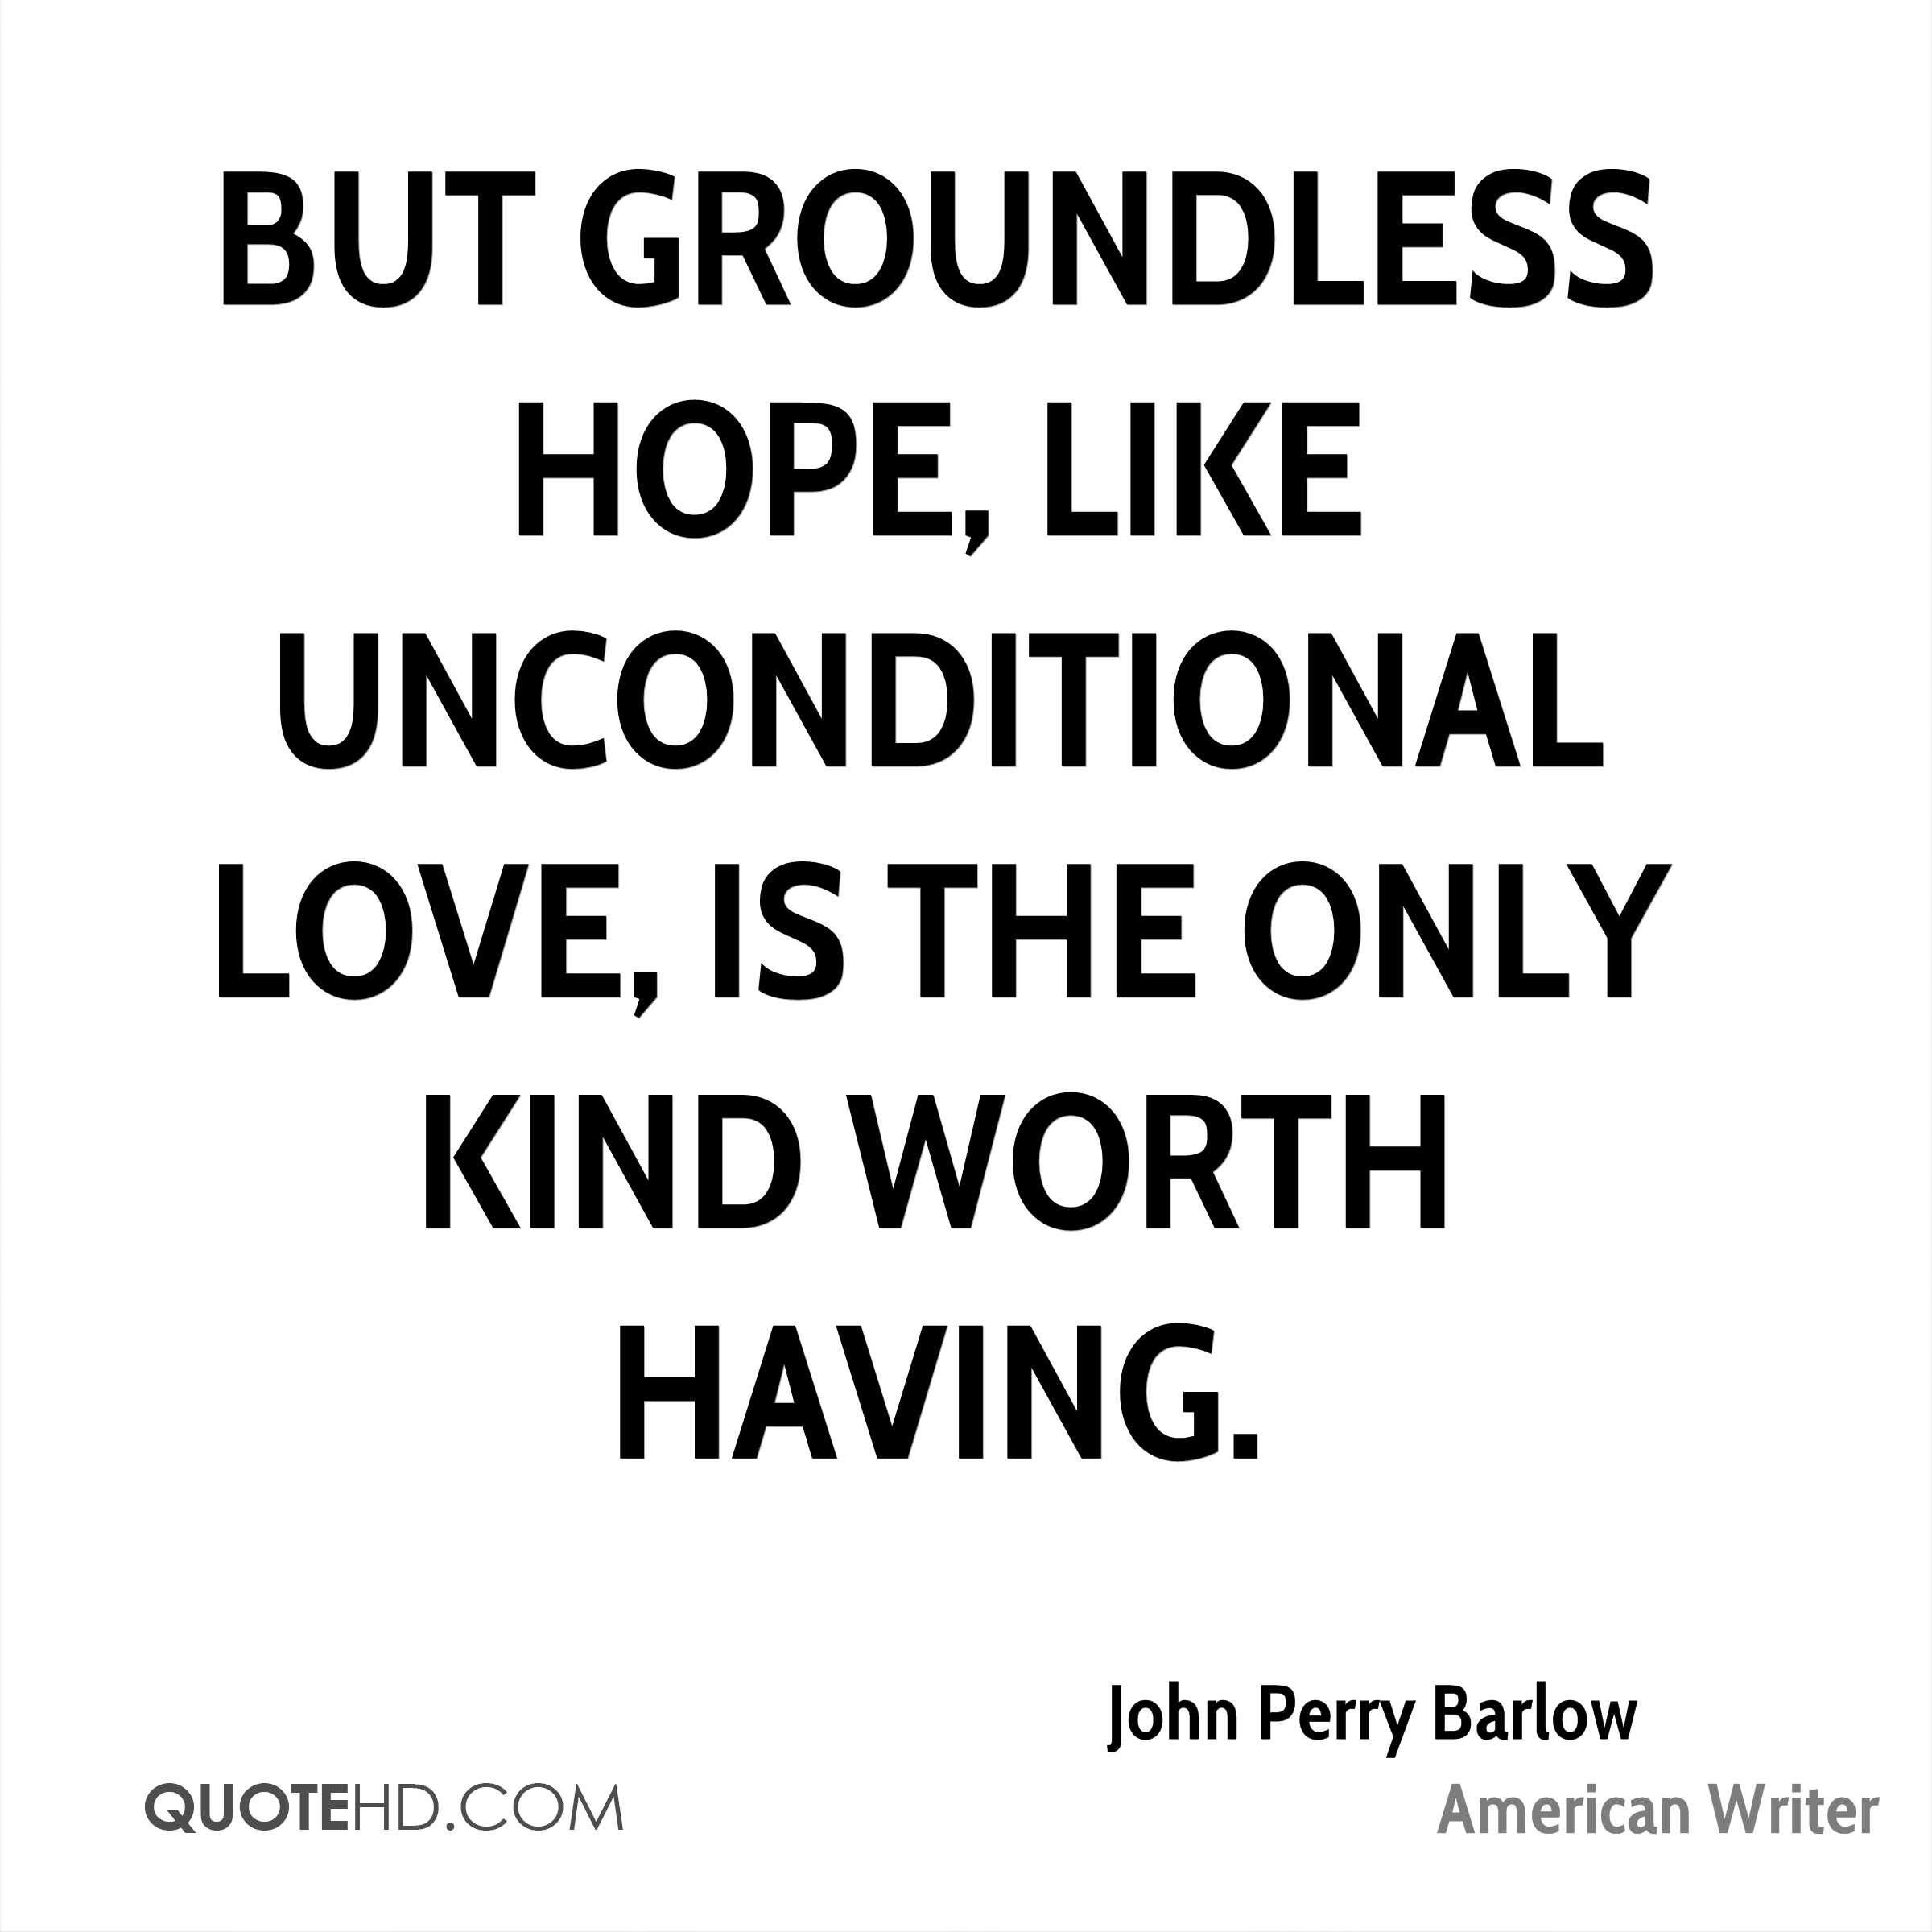 But groundless hope, like unconditional love, is the only kind worth having.